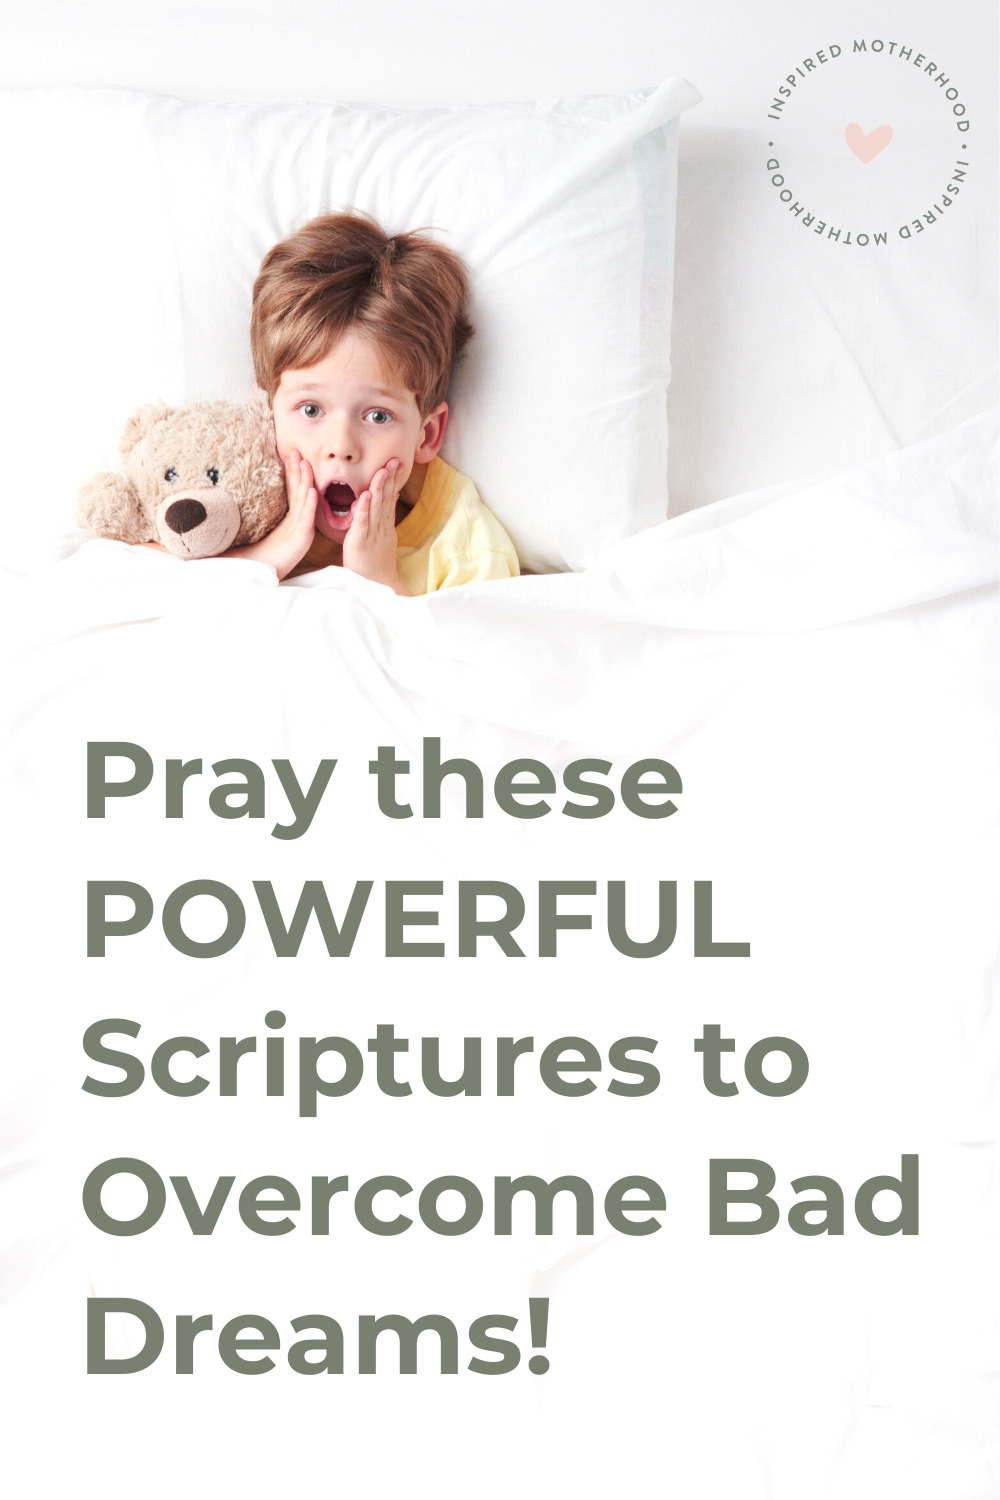 Does your child fight sleep because of bad dreams or nightmares? Here are 7 effective scriptures to overcome bad dreams. Find peaceful sleep with kids by praying these bible verses together!